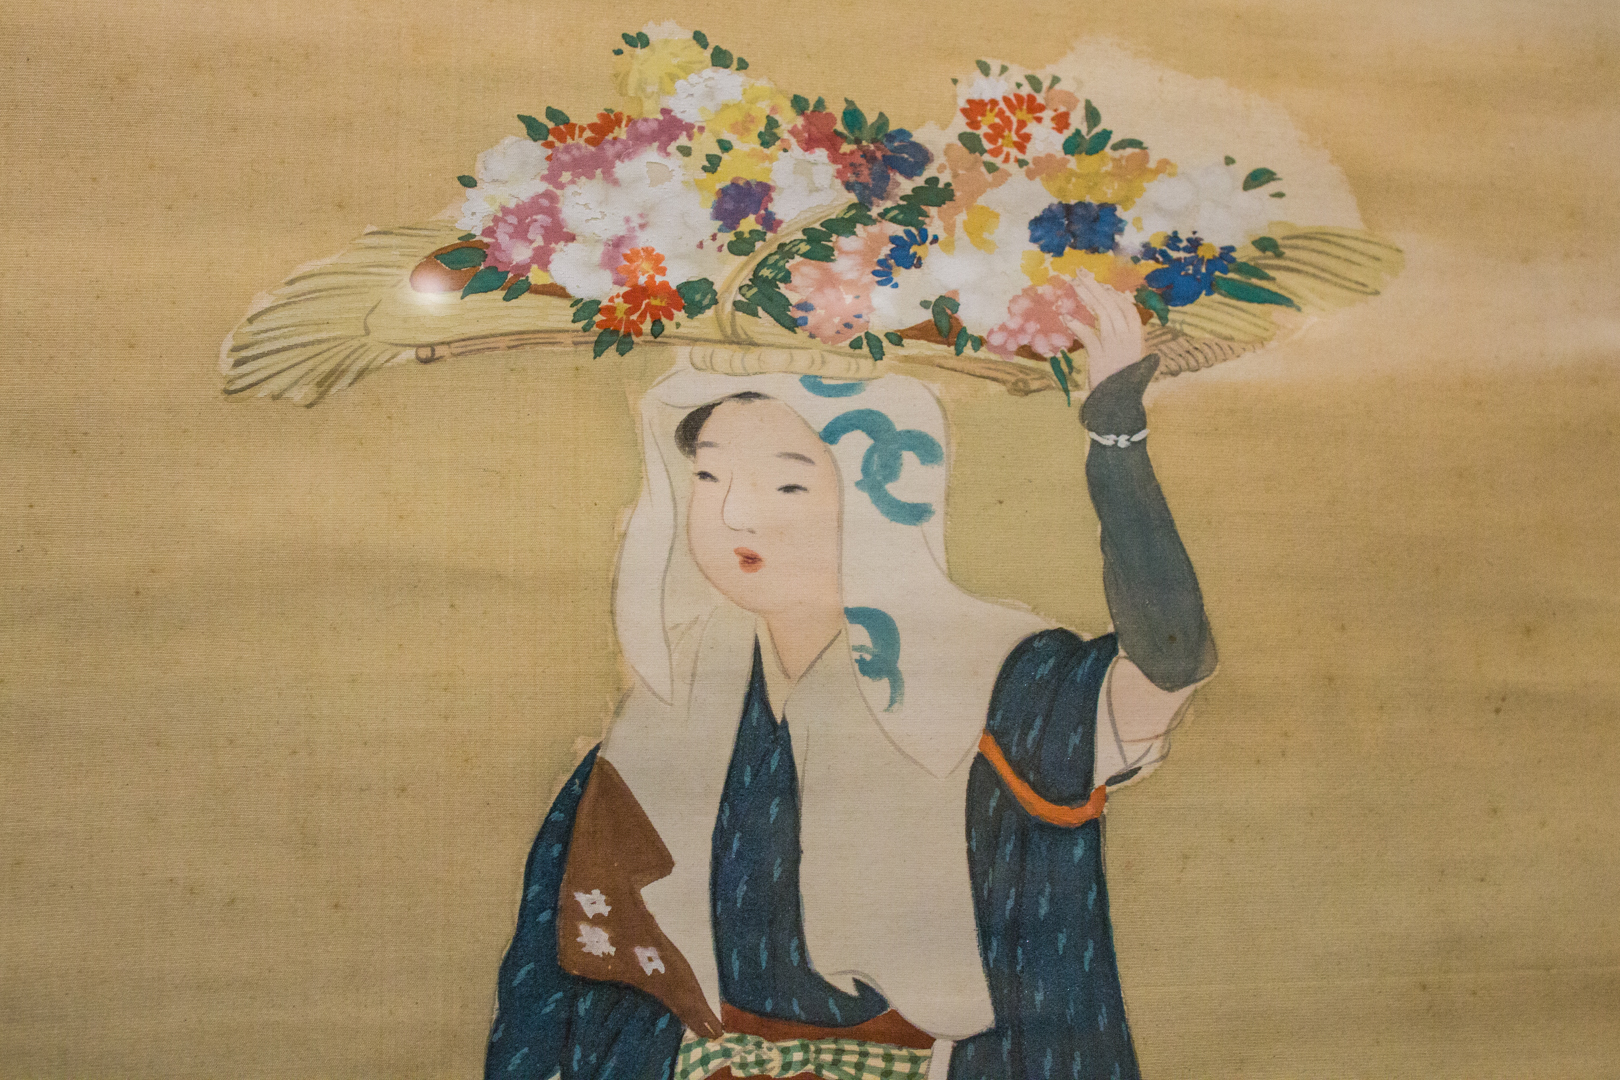 Woman Selling Flowers (detail)